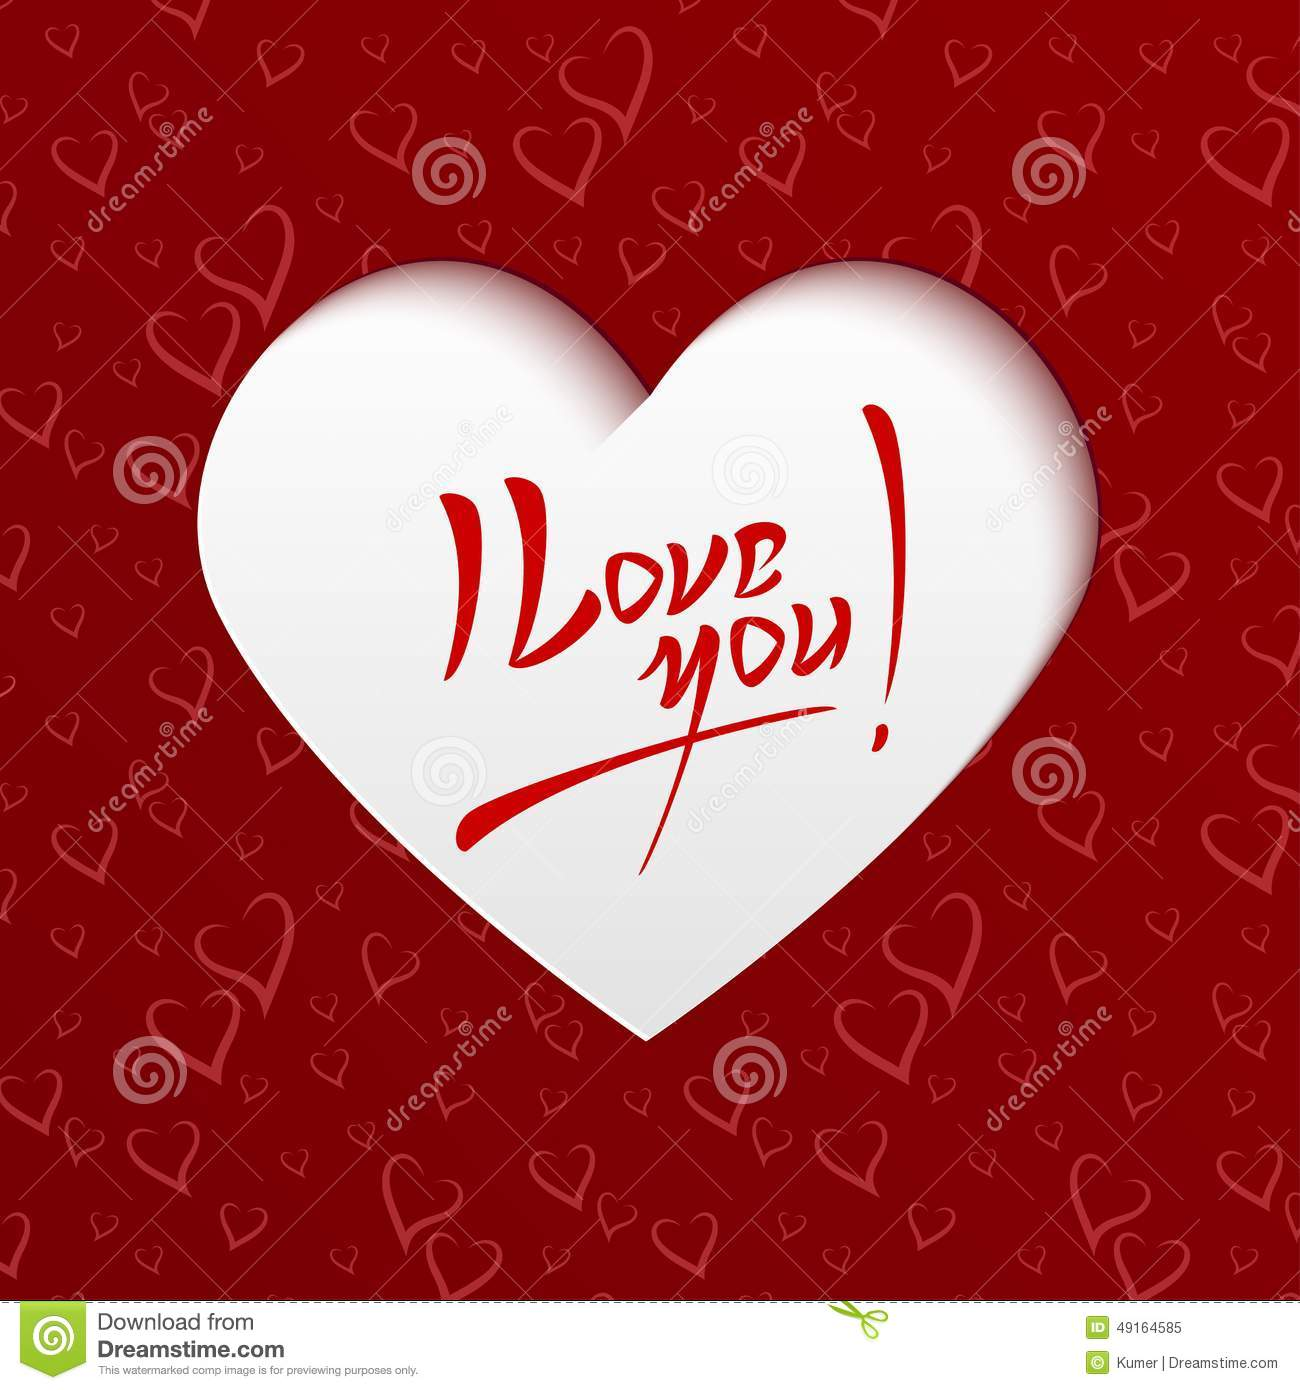 Card i love you ukrandiffusion i love you valentines day greeting card stock vector m4hsunfo